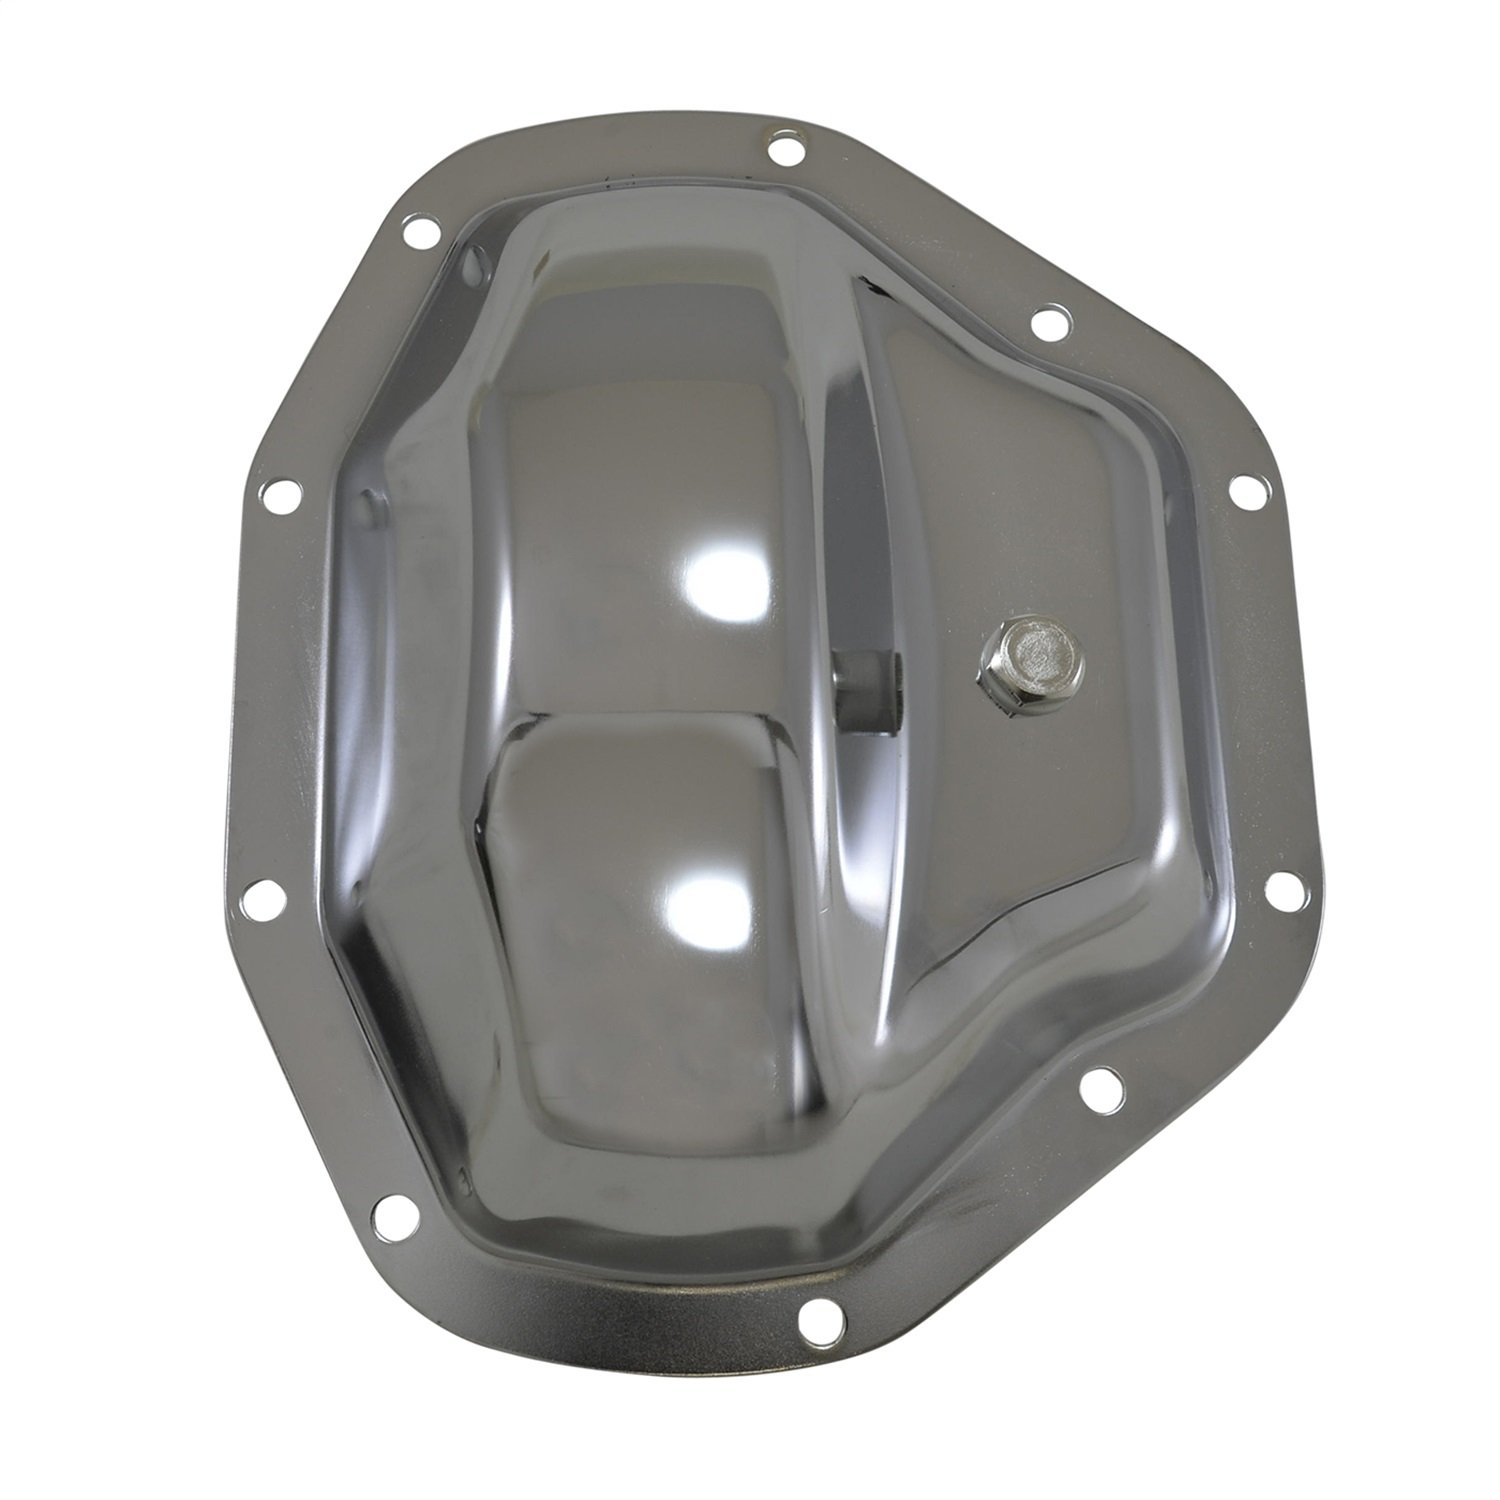 Yukon (YP C1-D80) Chrome Replacement Cover for Dana 80 Differential